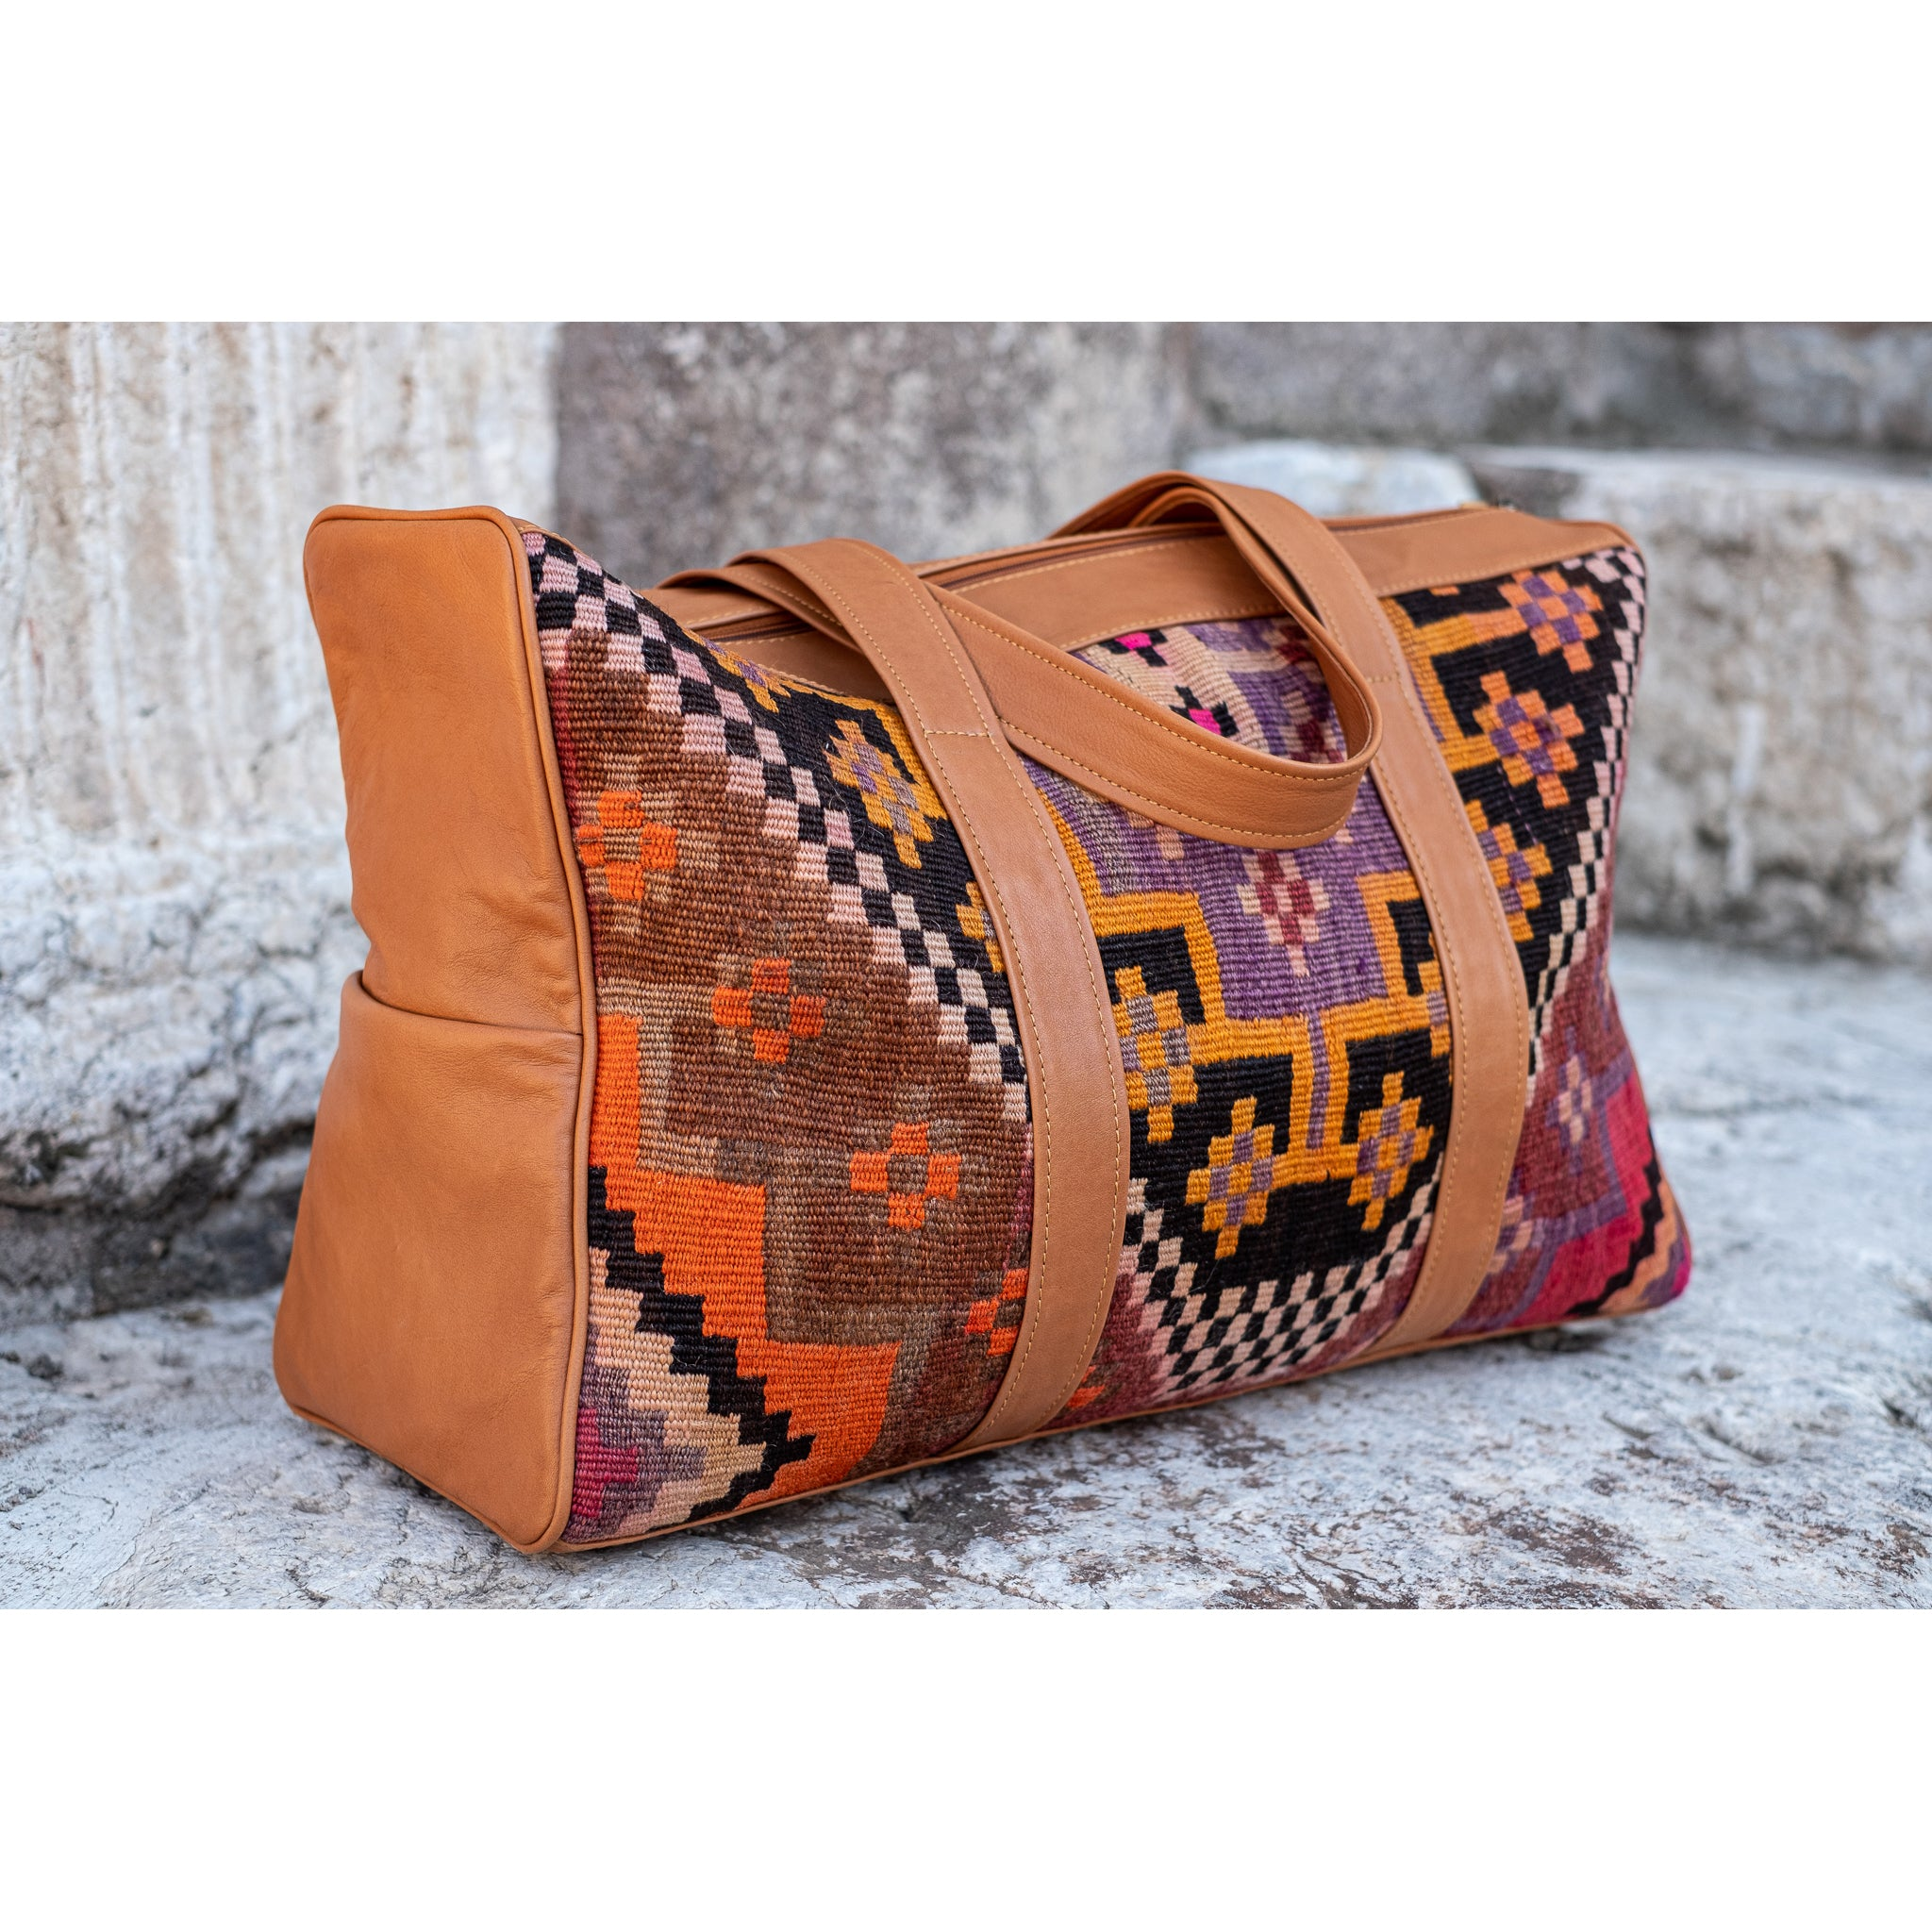 Kilim & Leather Overnight Bag #47 (w/ side pockets)